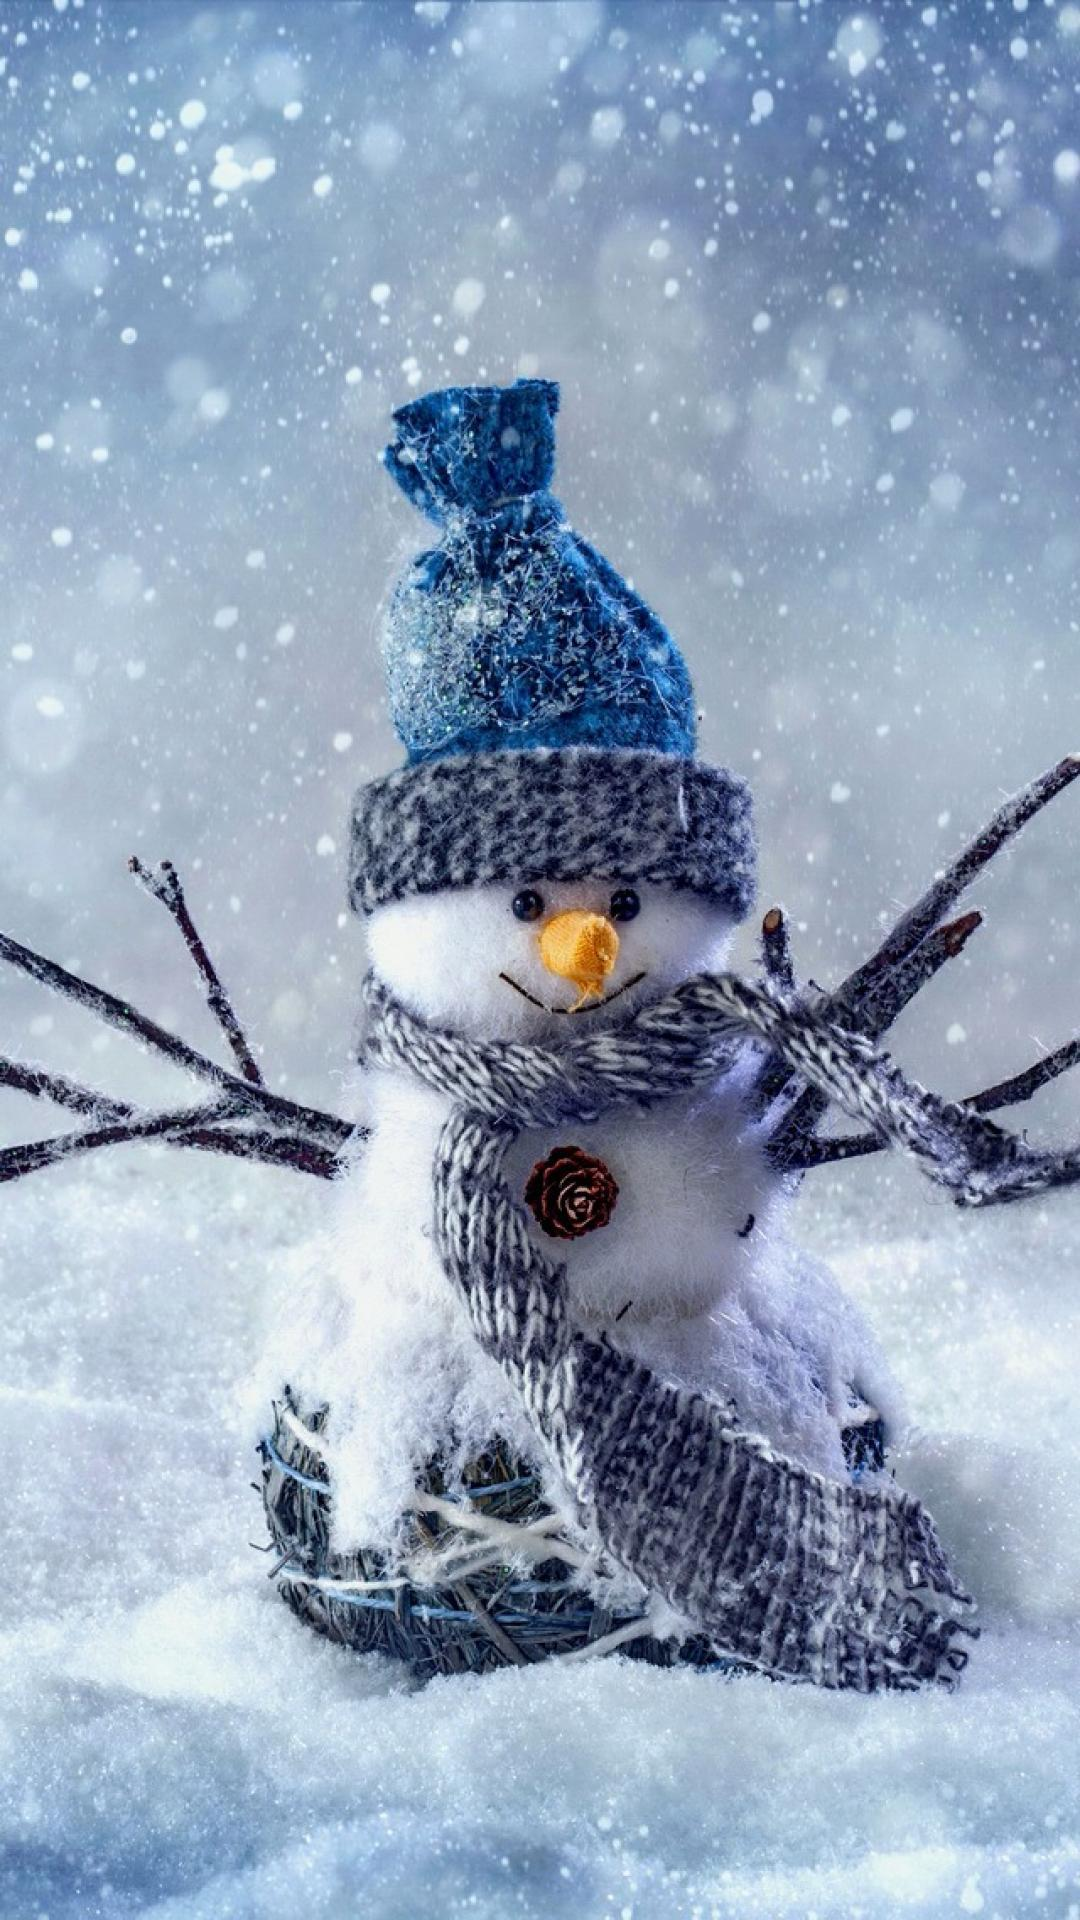 Snowman Cute Winter Iphonex Wallpaper Iphone Wallpaper